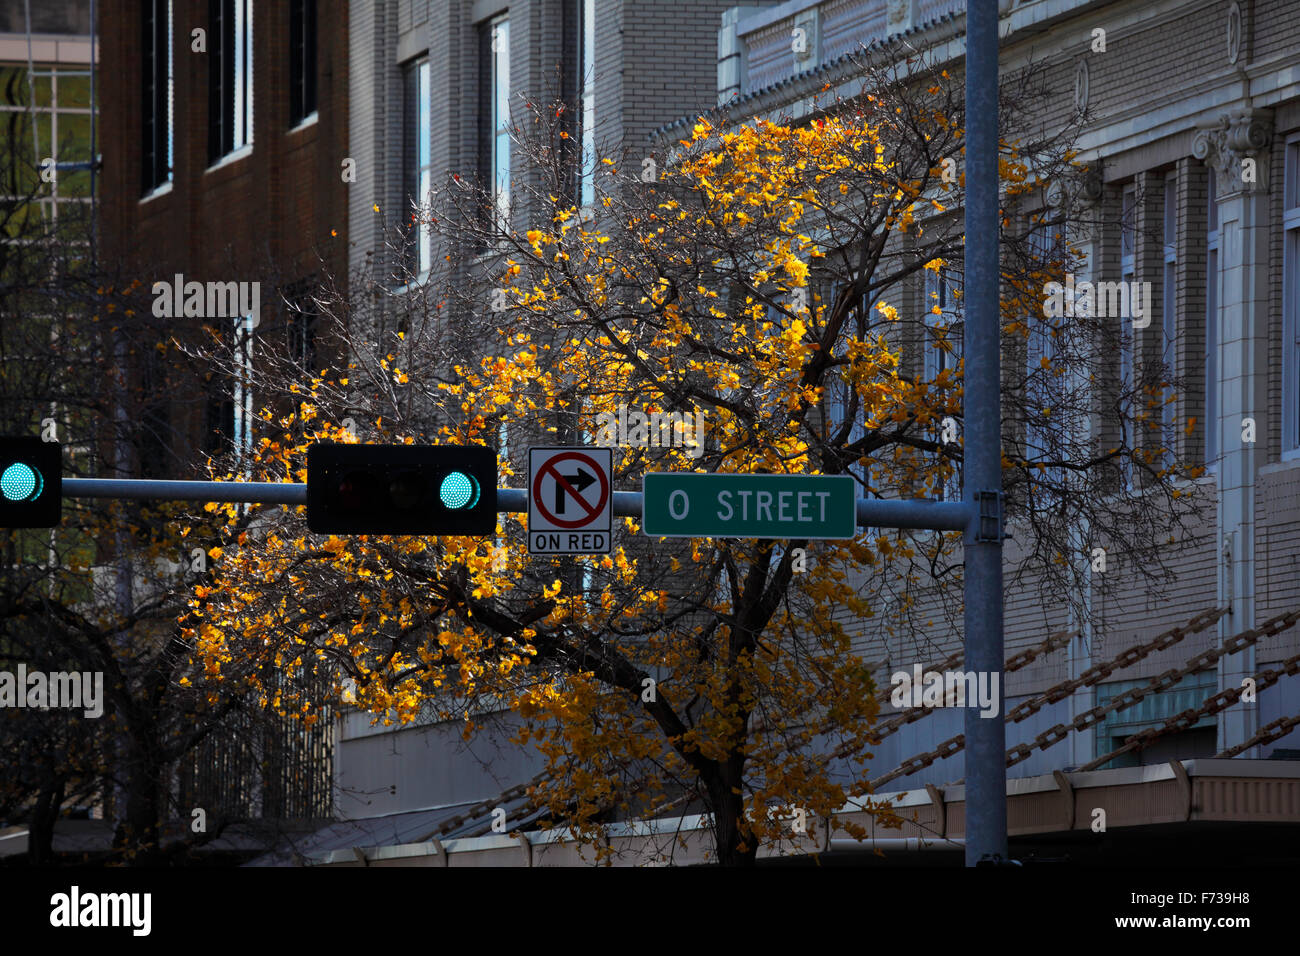 Yellow leaves on a tree behind a stoplight and sign. - Stock Image